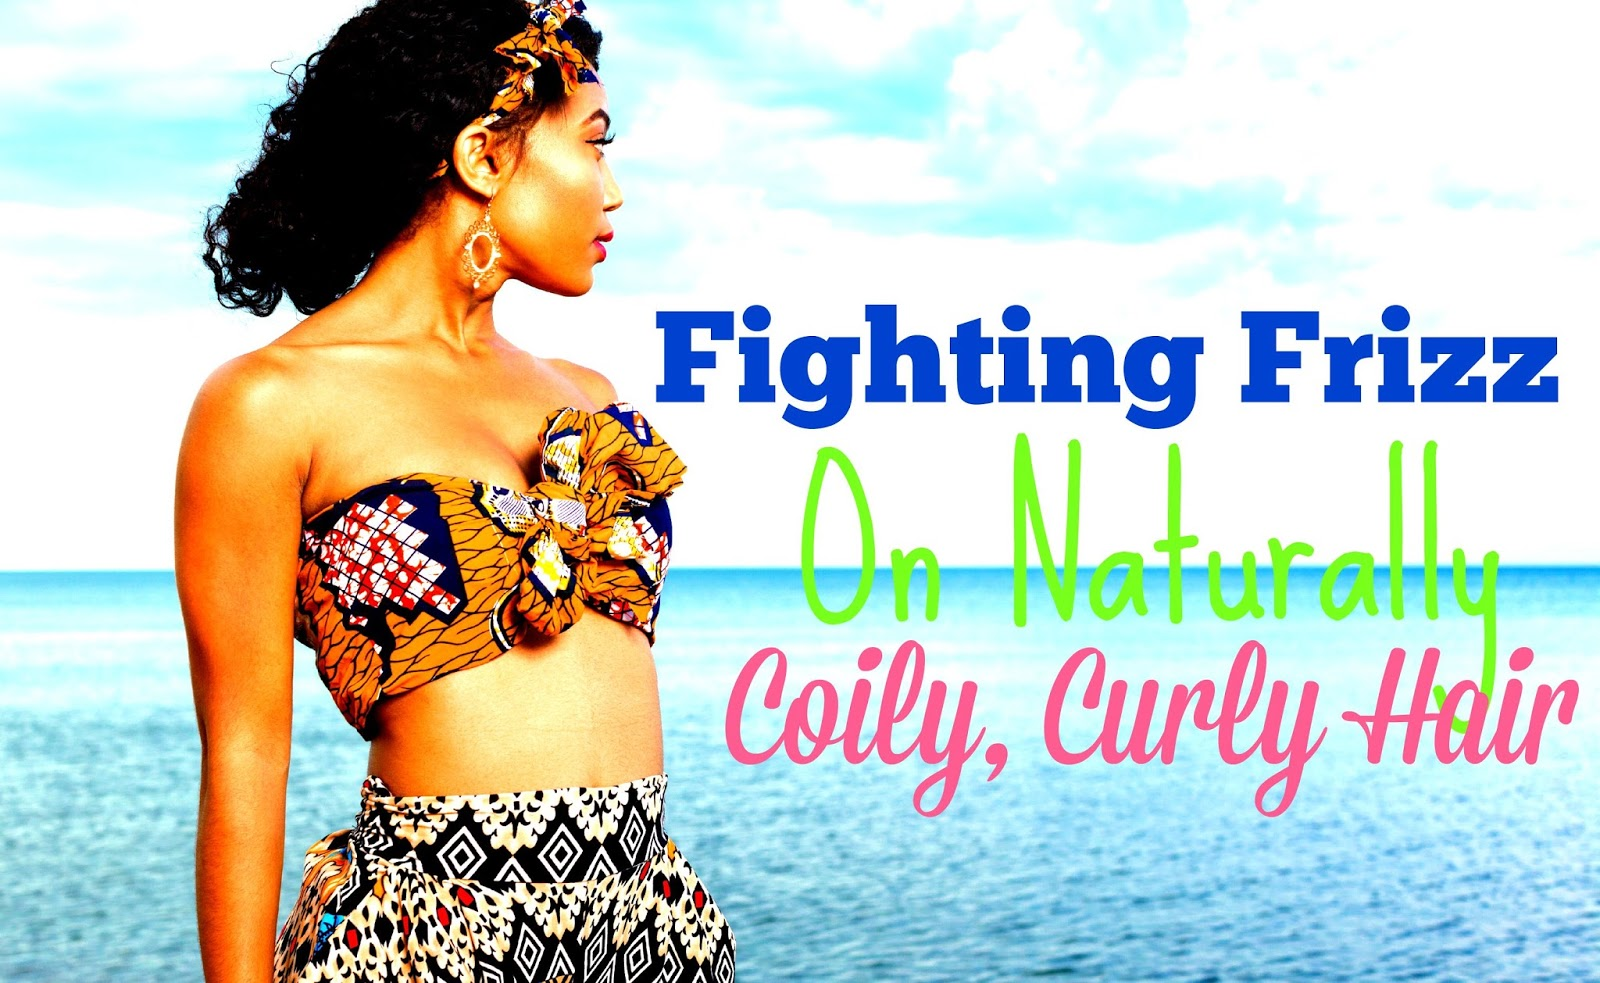 Fighting Frizz On Naturally Coily, Curly Hair